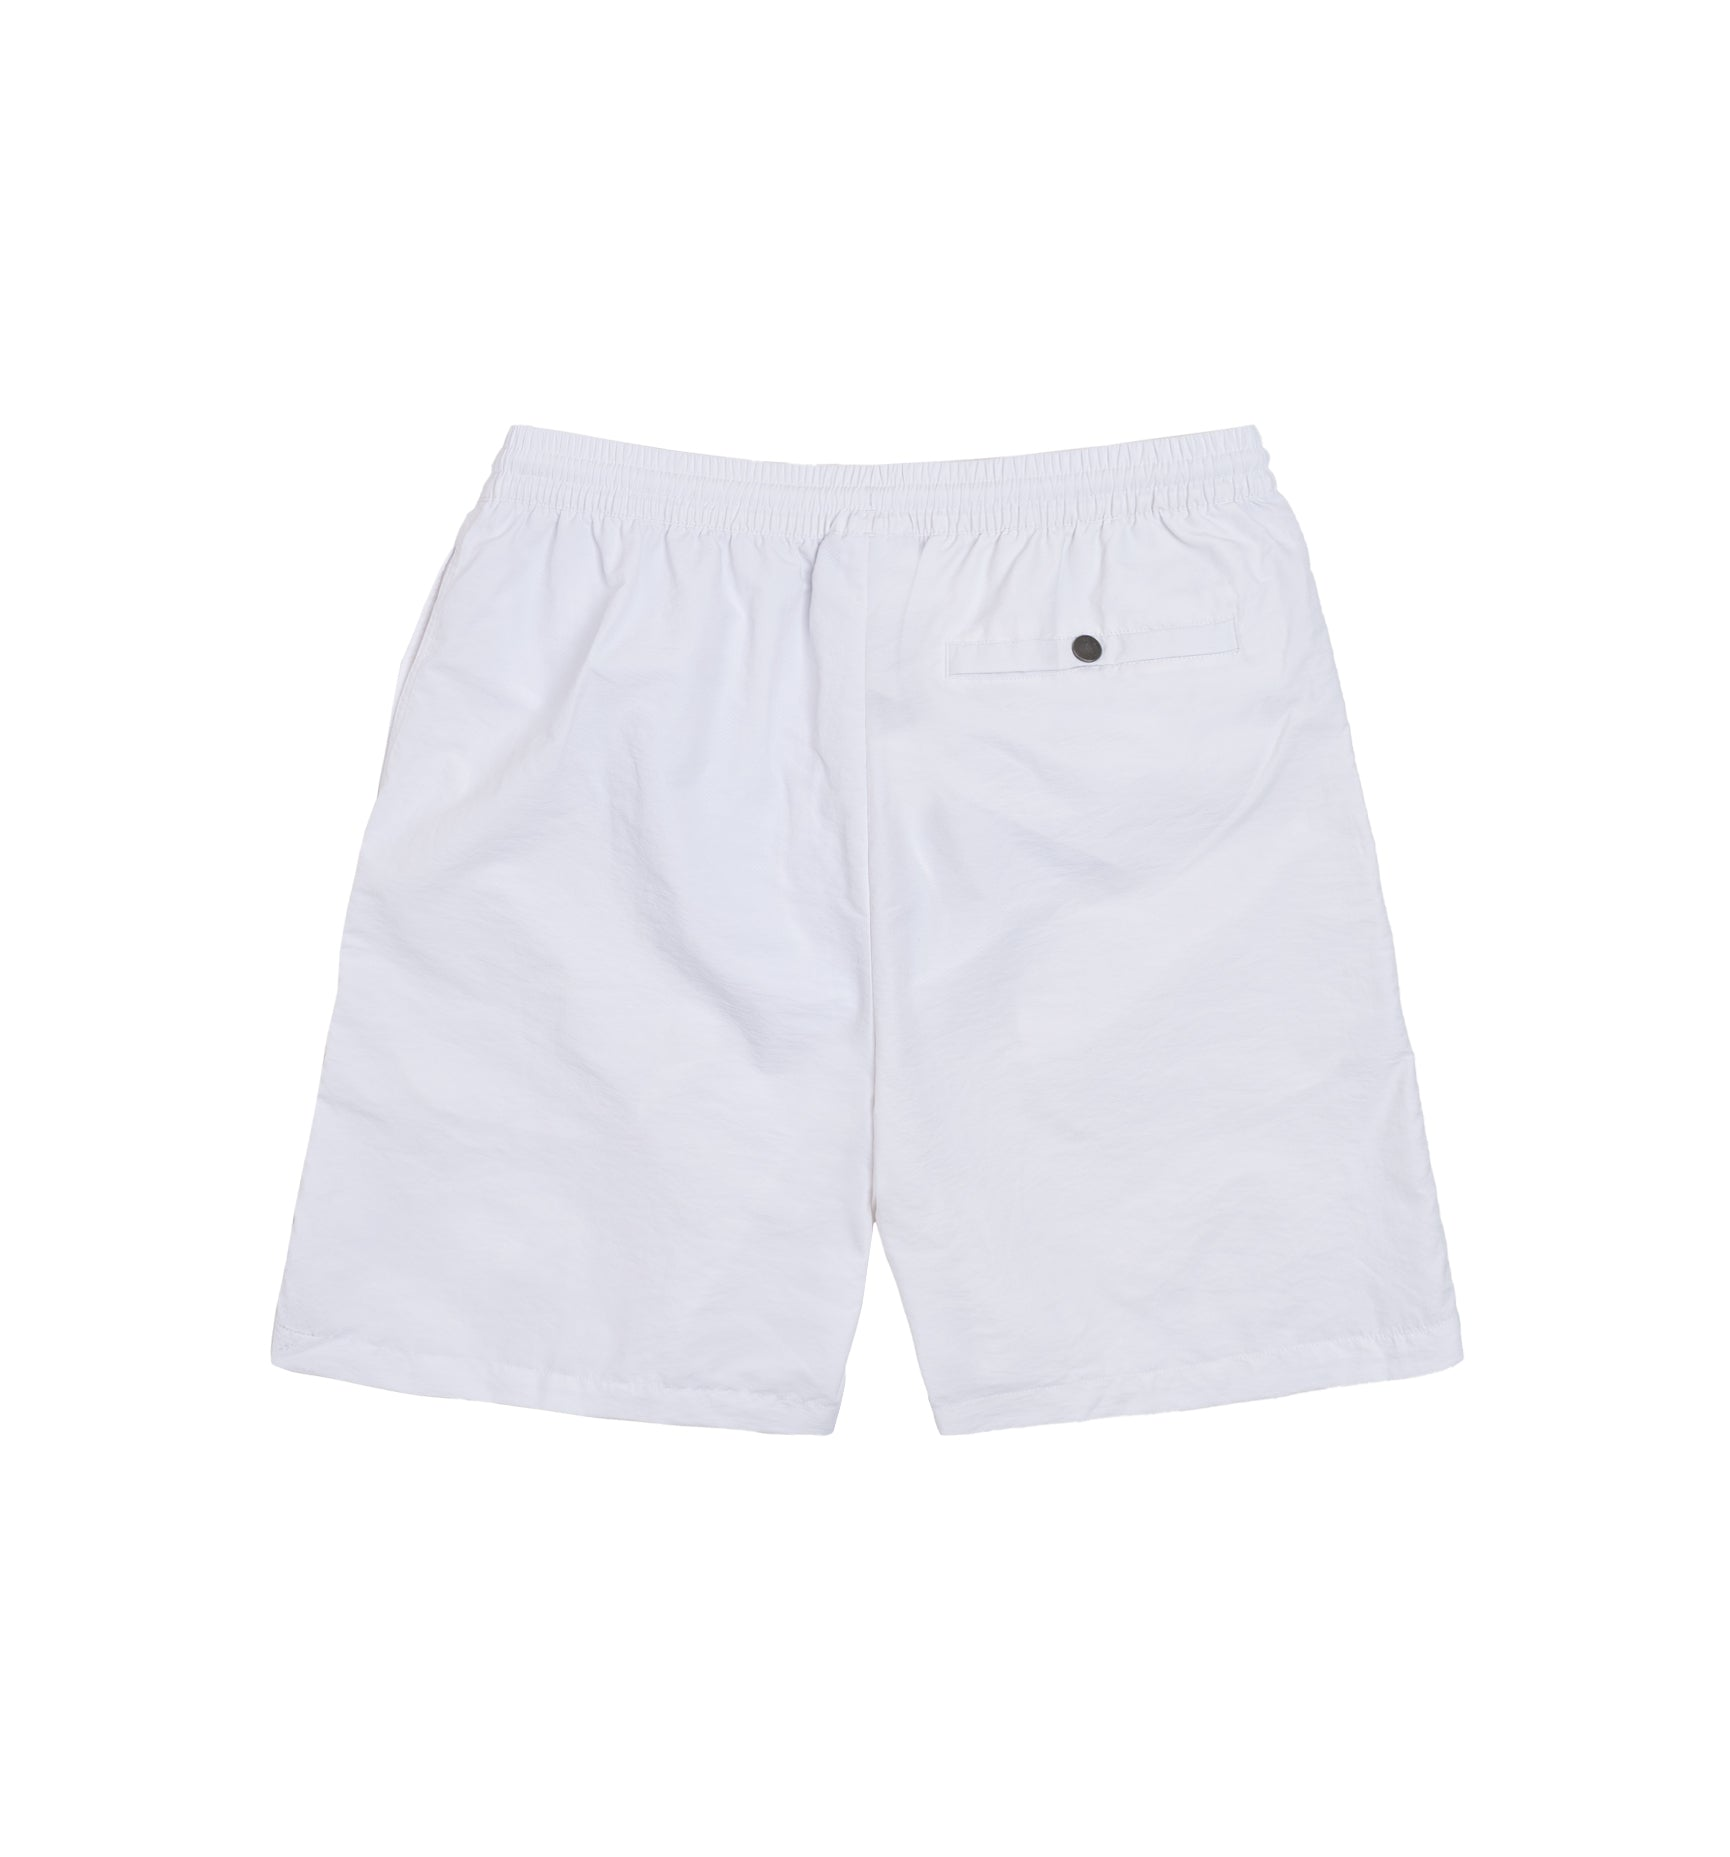 Alife Swim/Run Nylon Short - White